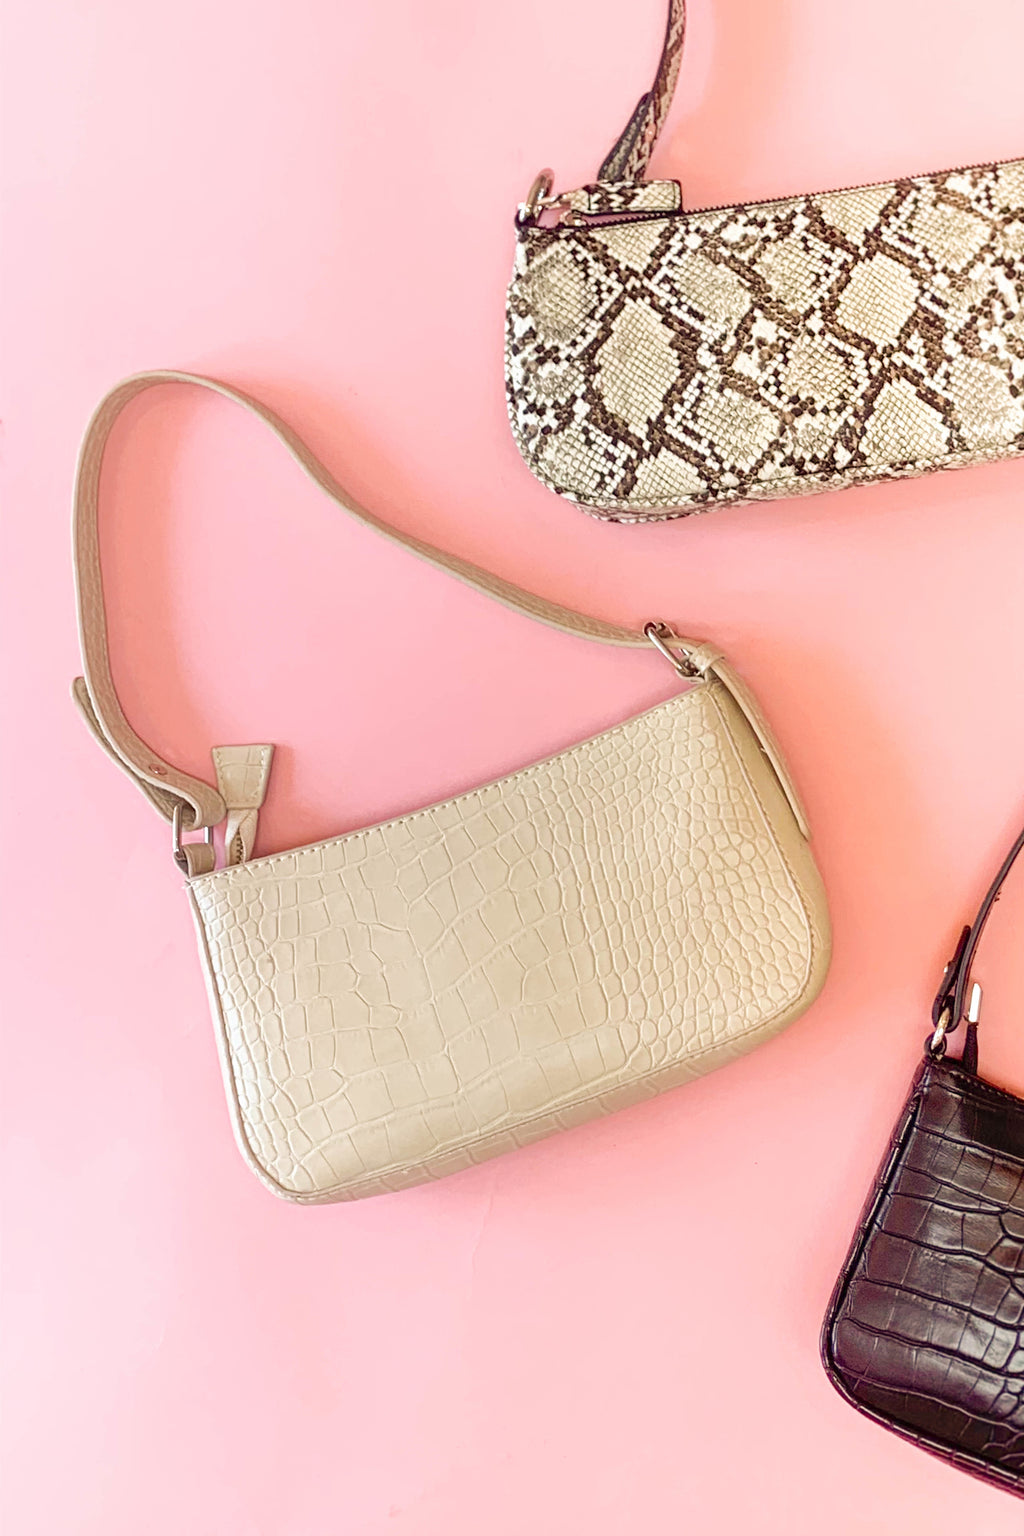 Bring It Back Cream Snakeskin Shoulder Bag